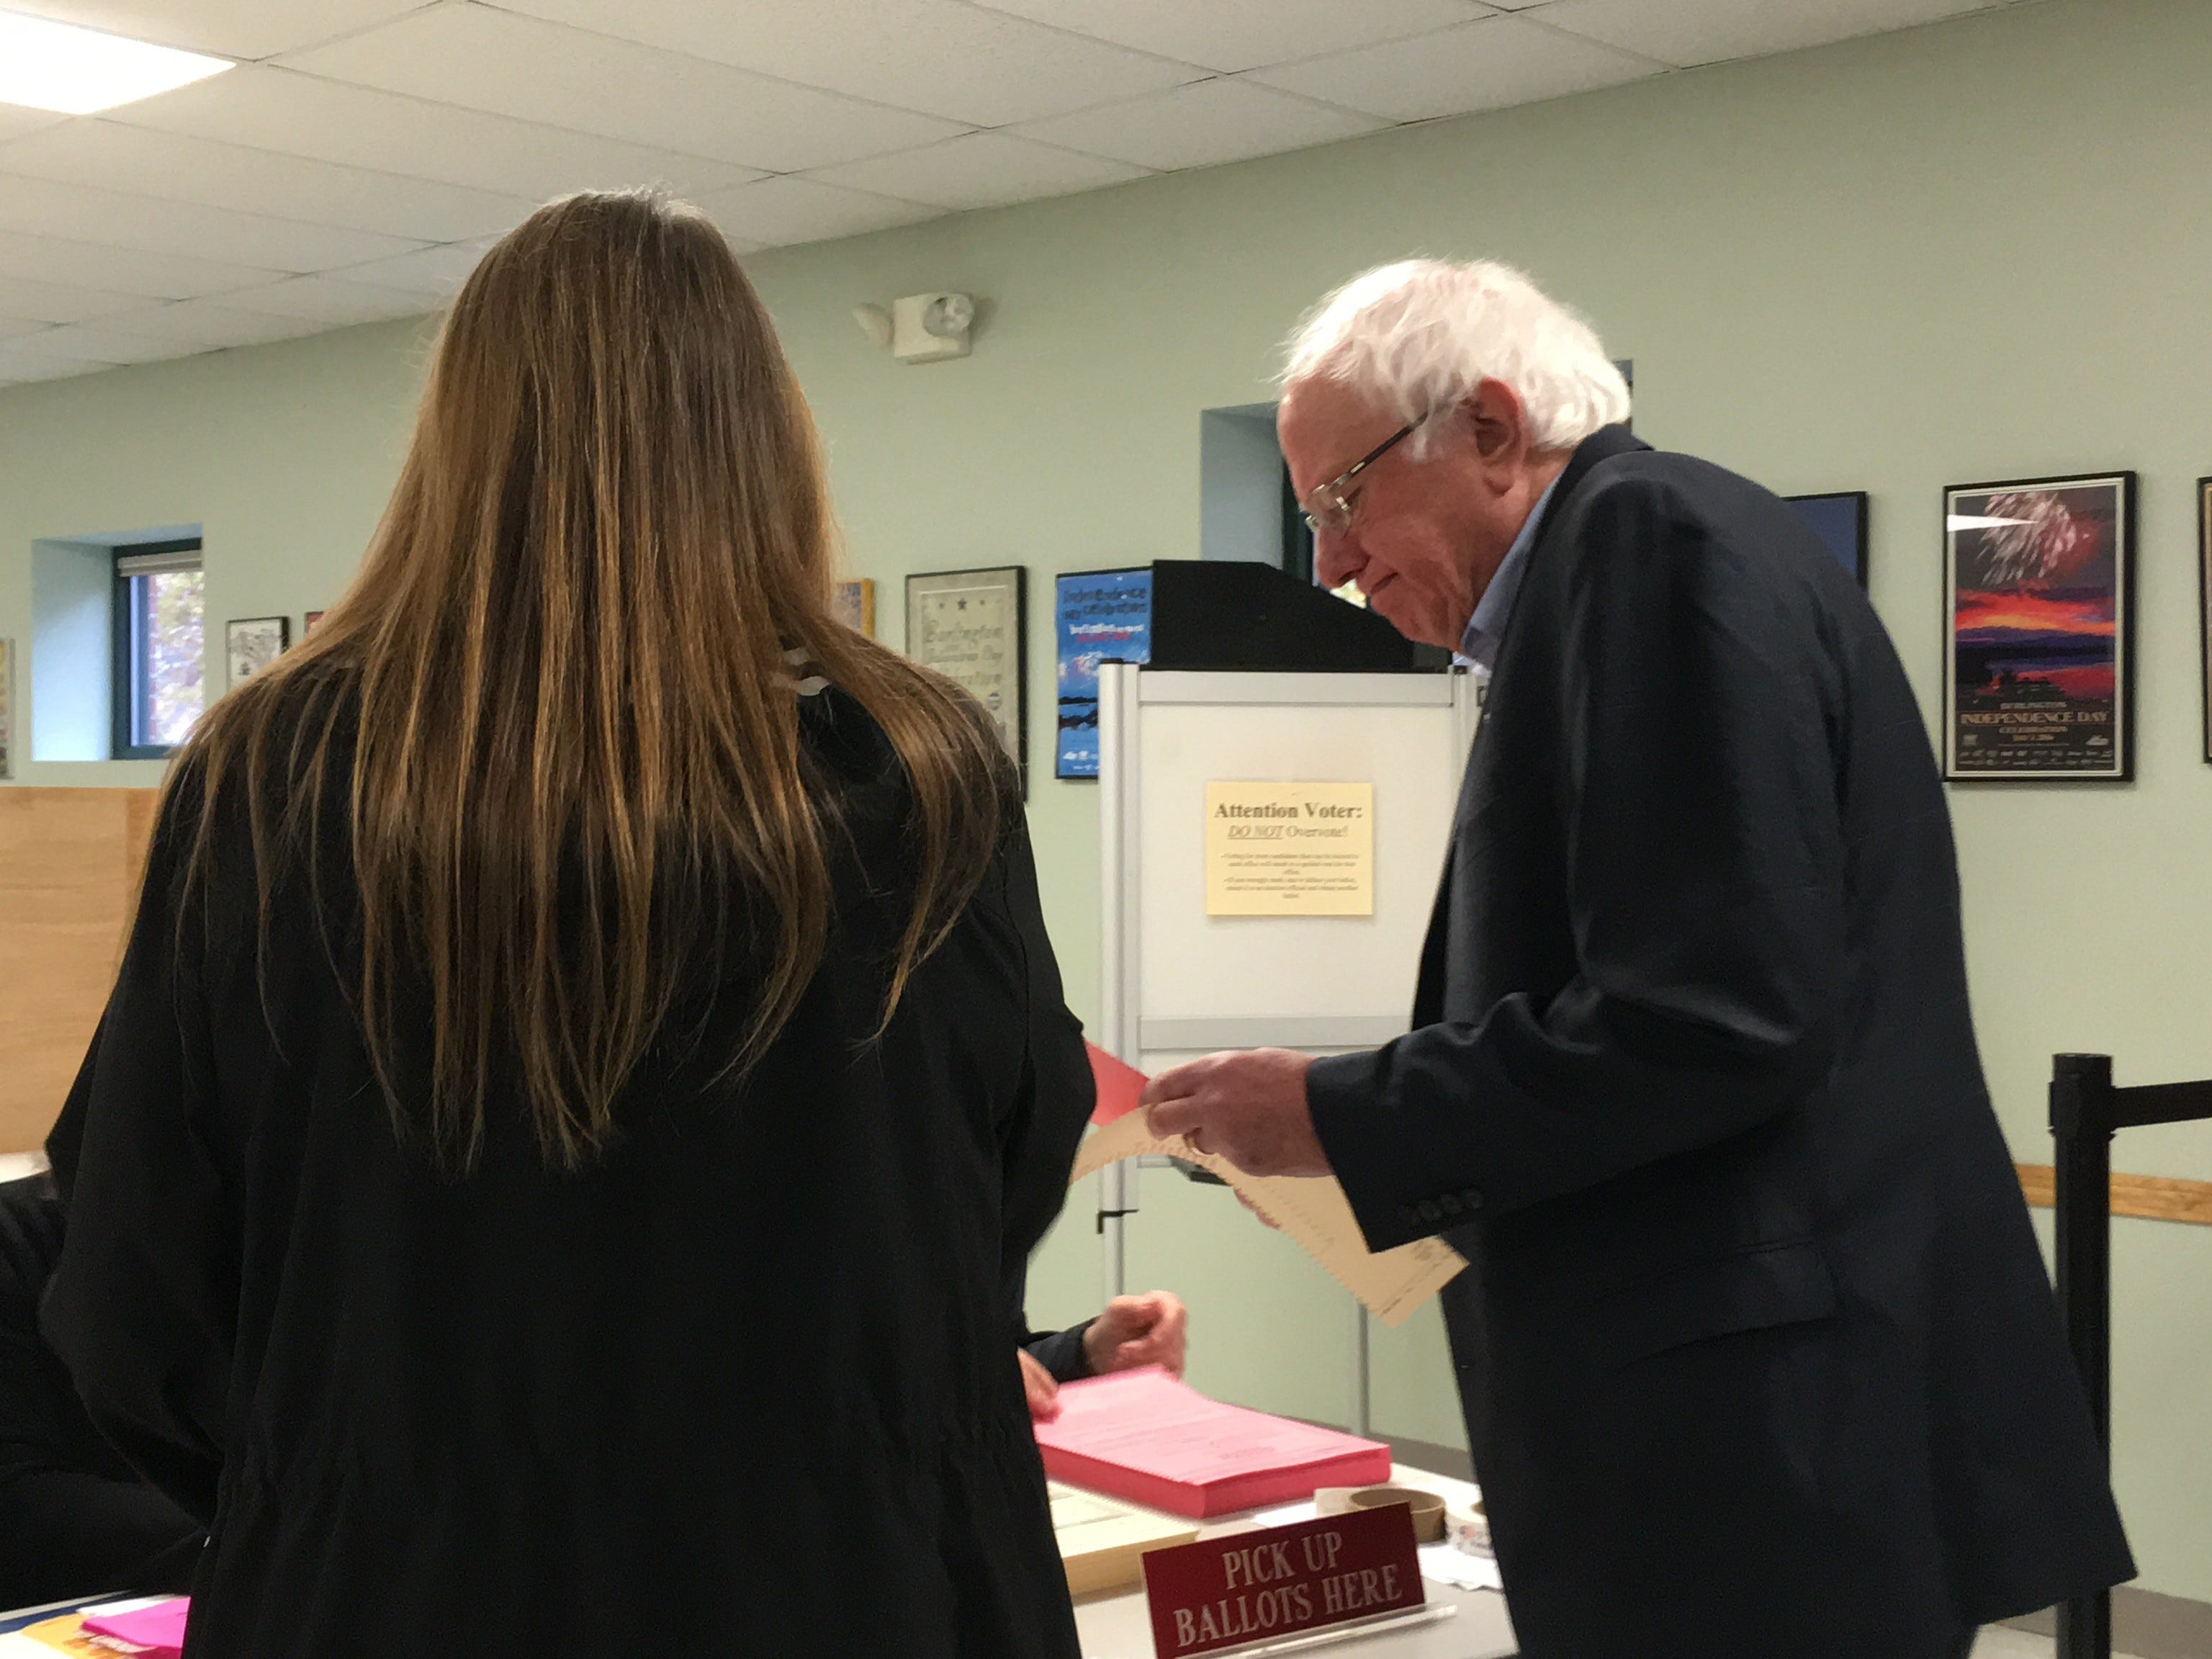 Sen. Bernie Sanders and his wife, Jane O'Meara Sanders, get ready to vote at the Burlington Ward 7 polling station at the Robert Miller Community and Recreation Center on Tuesday, Nov. 6, 2018.